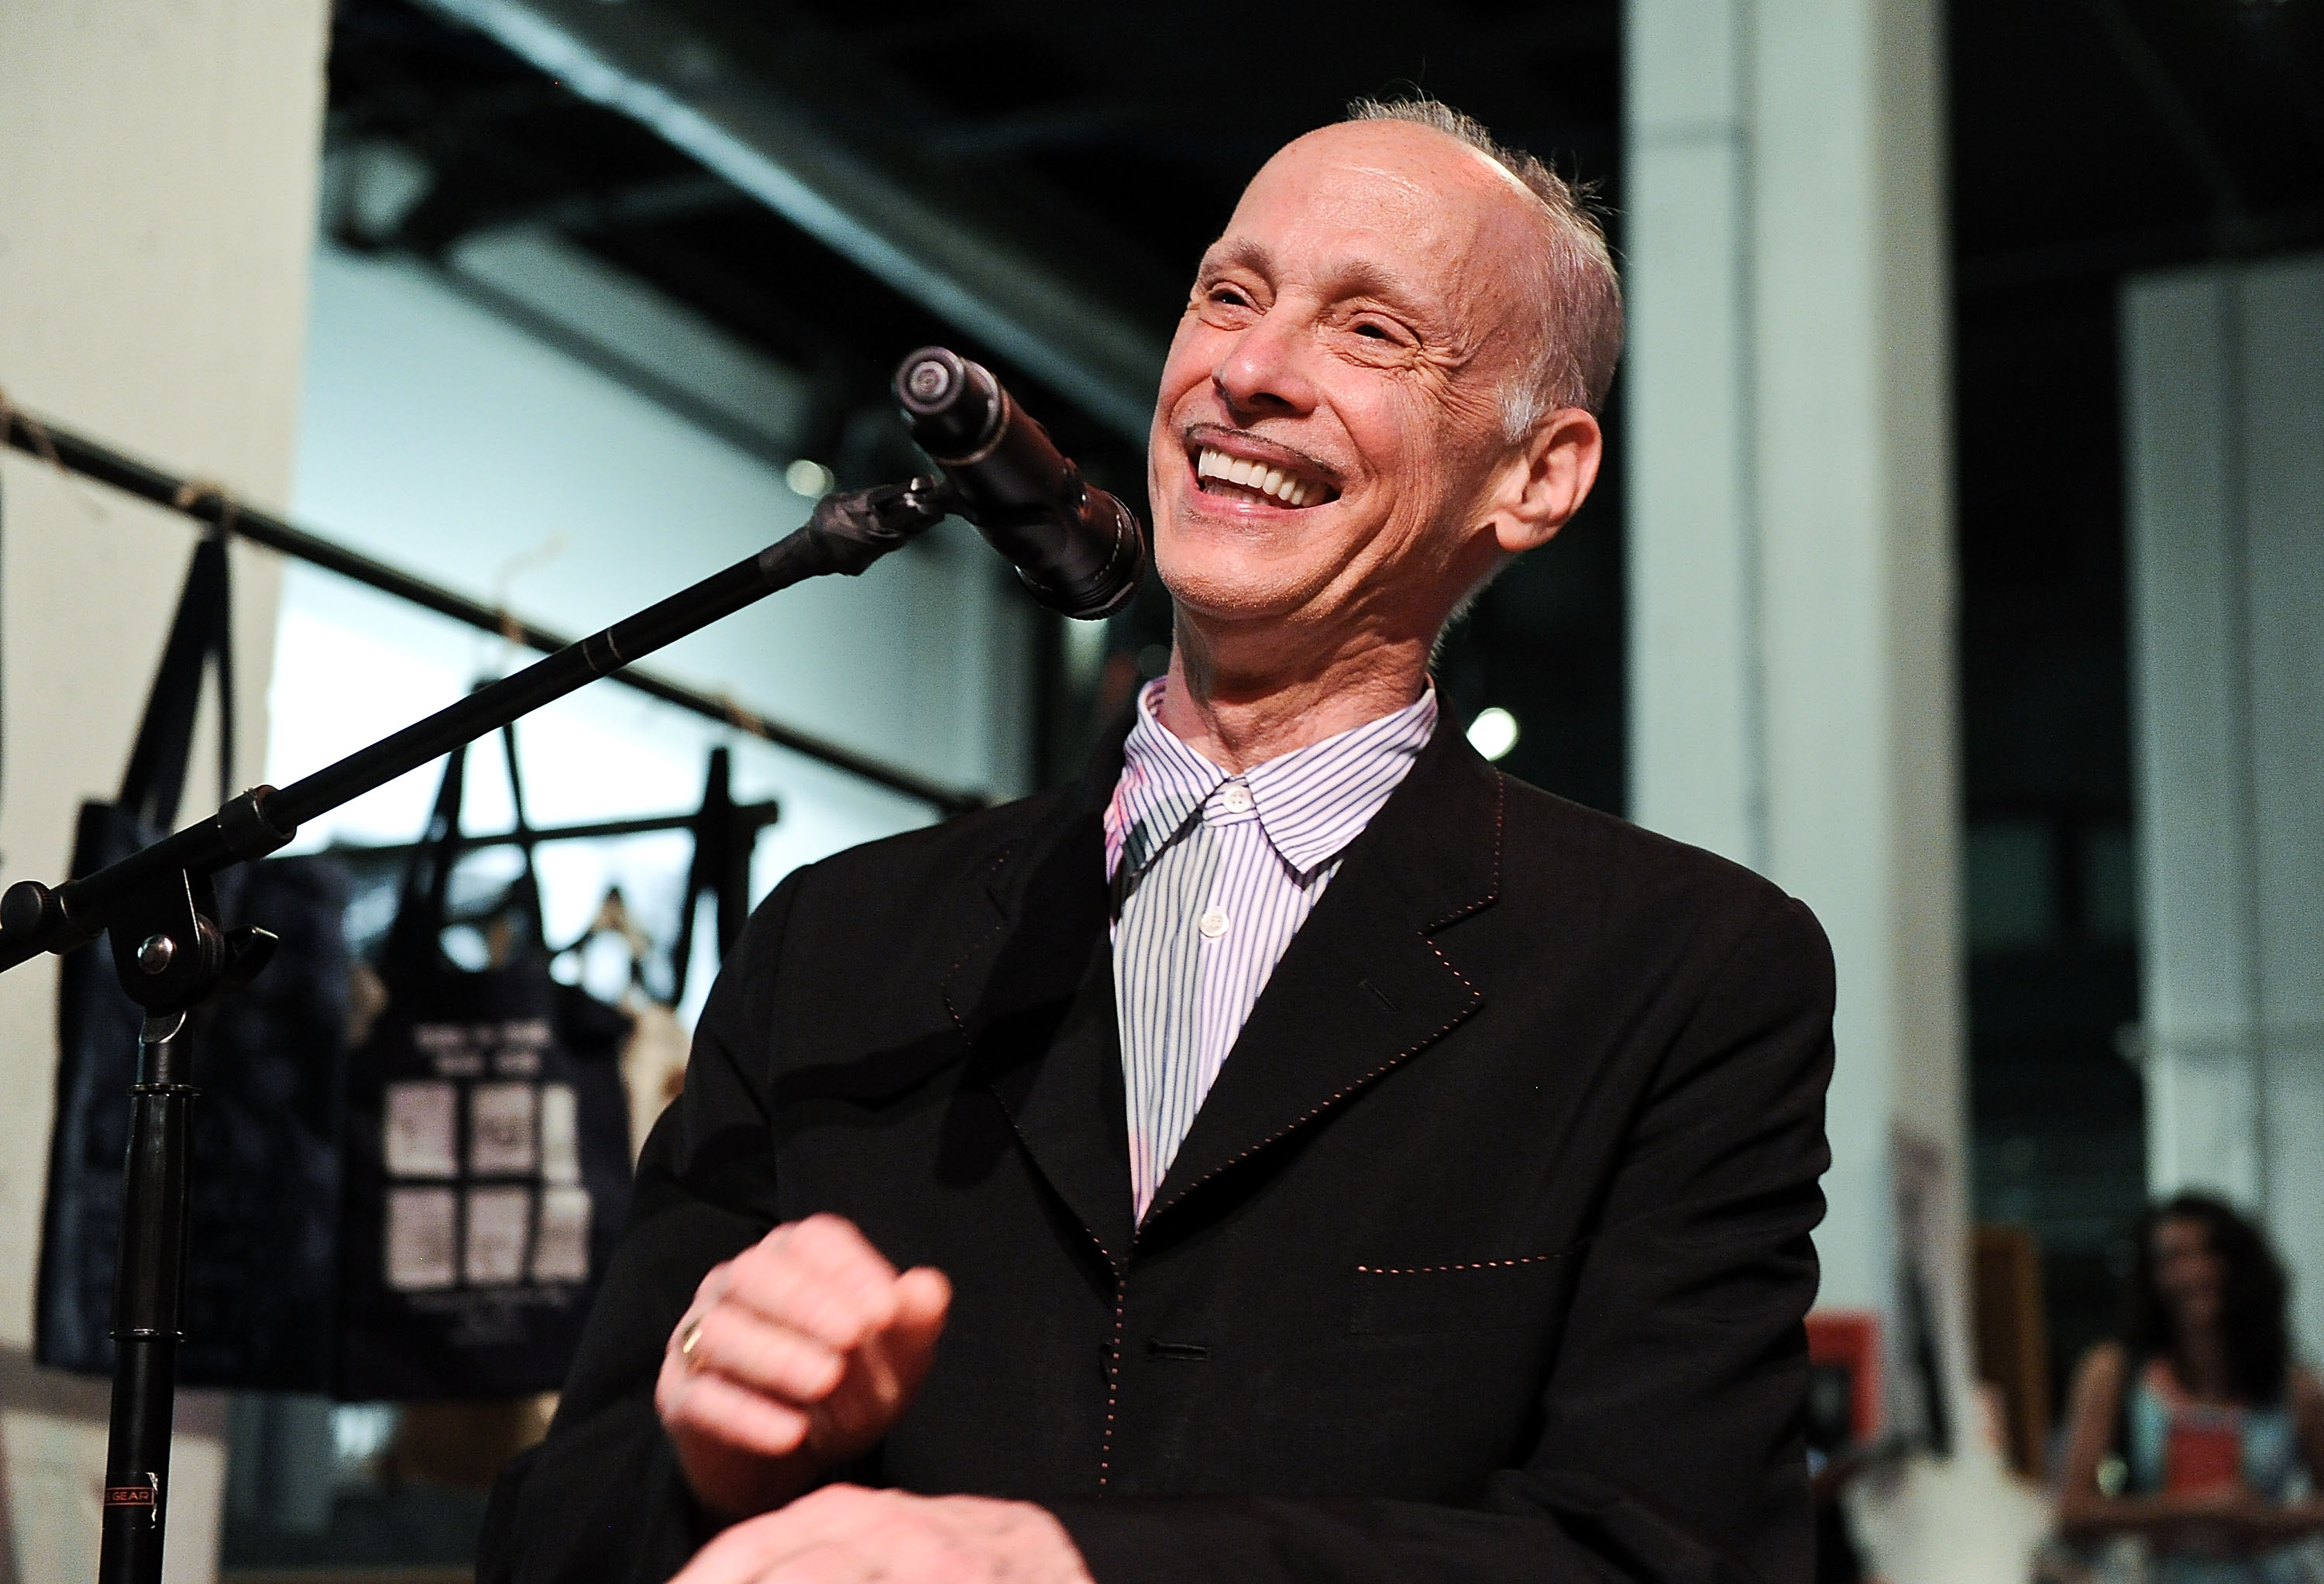 John Waters at the book launch party for his book  Carsick  in New York City on May 27, 2015.